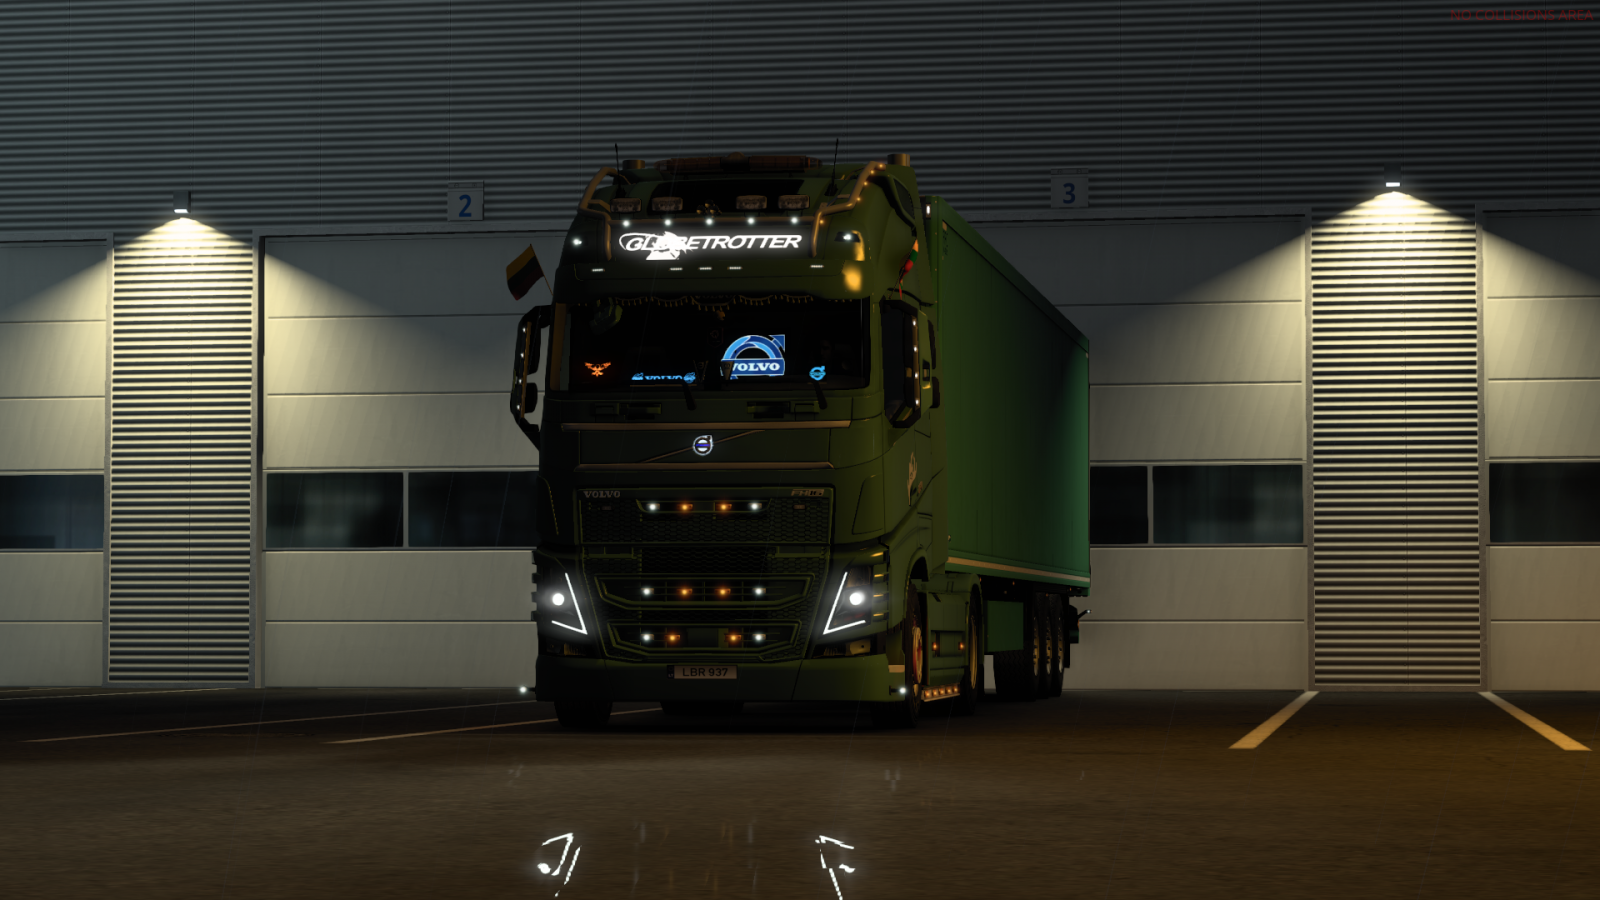 ets2_20210608_142349_00.png